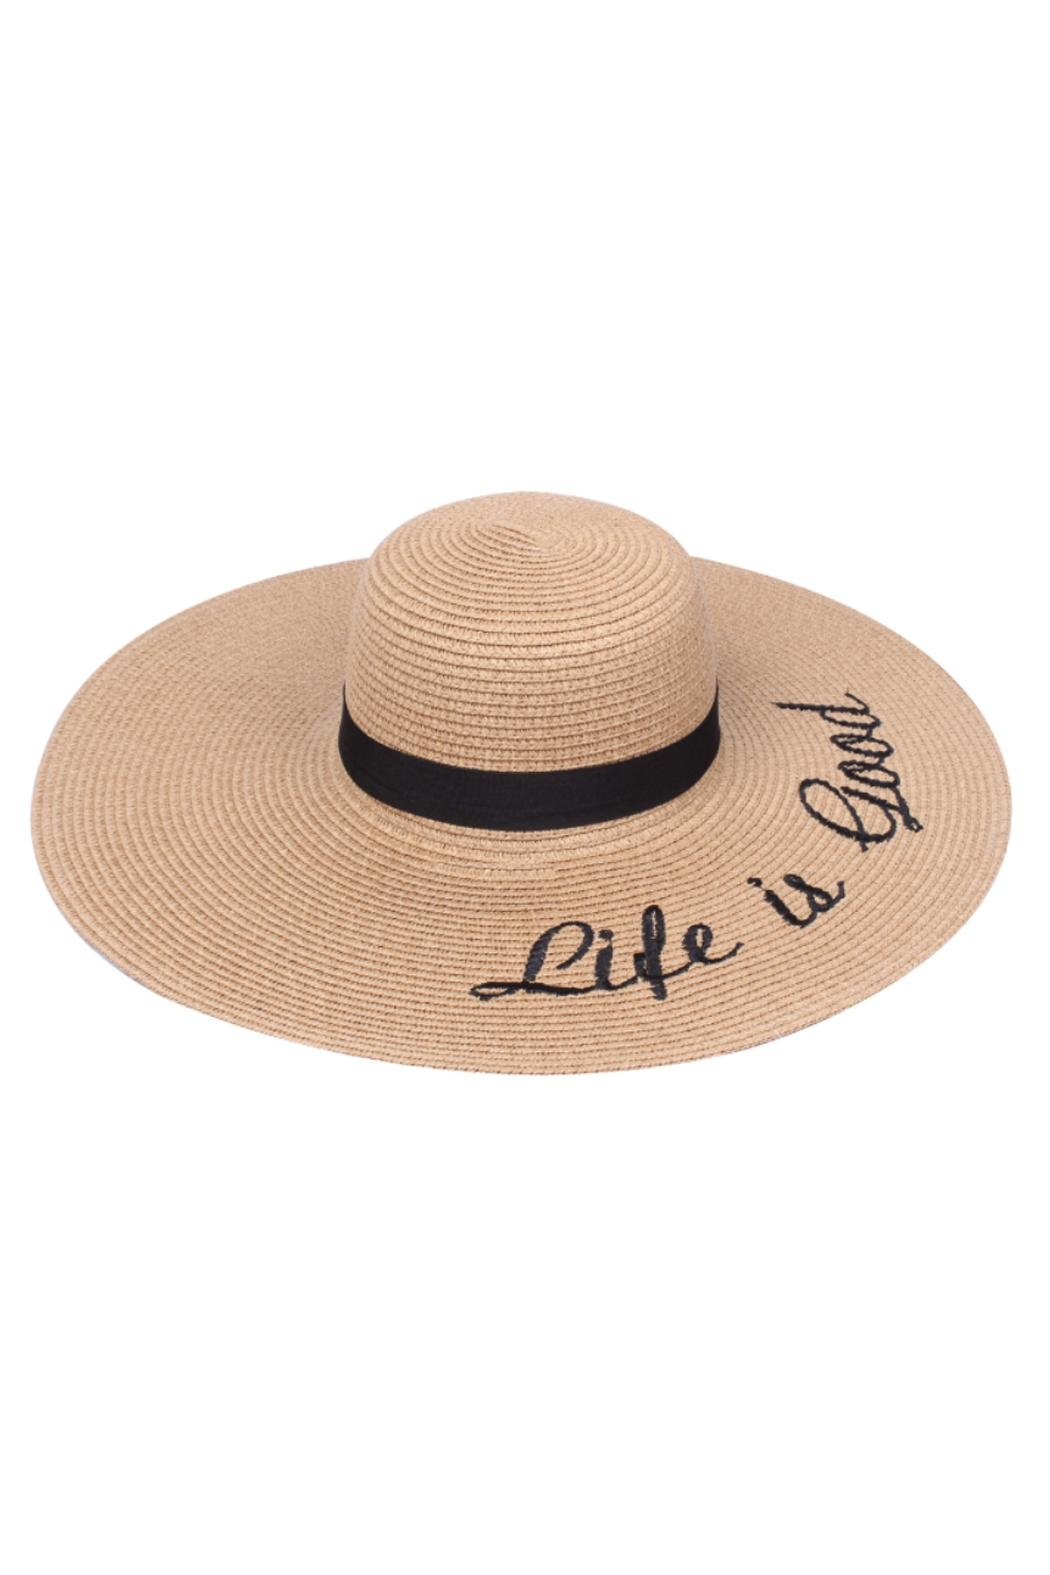 JChronicles Beach Floppy Hats - Main Image